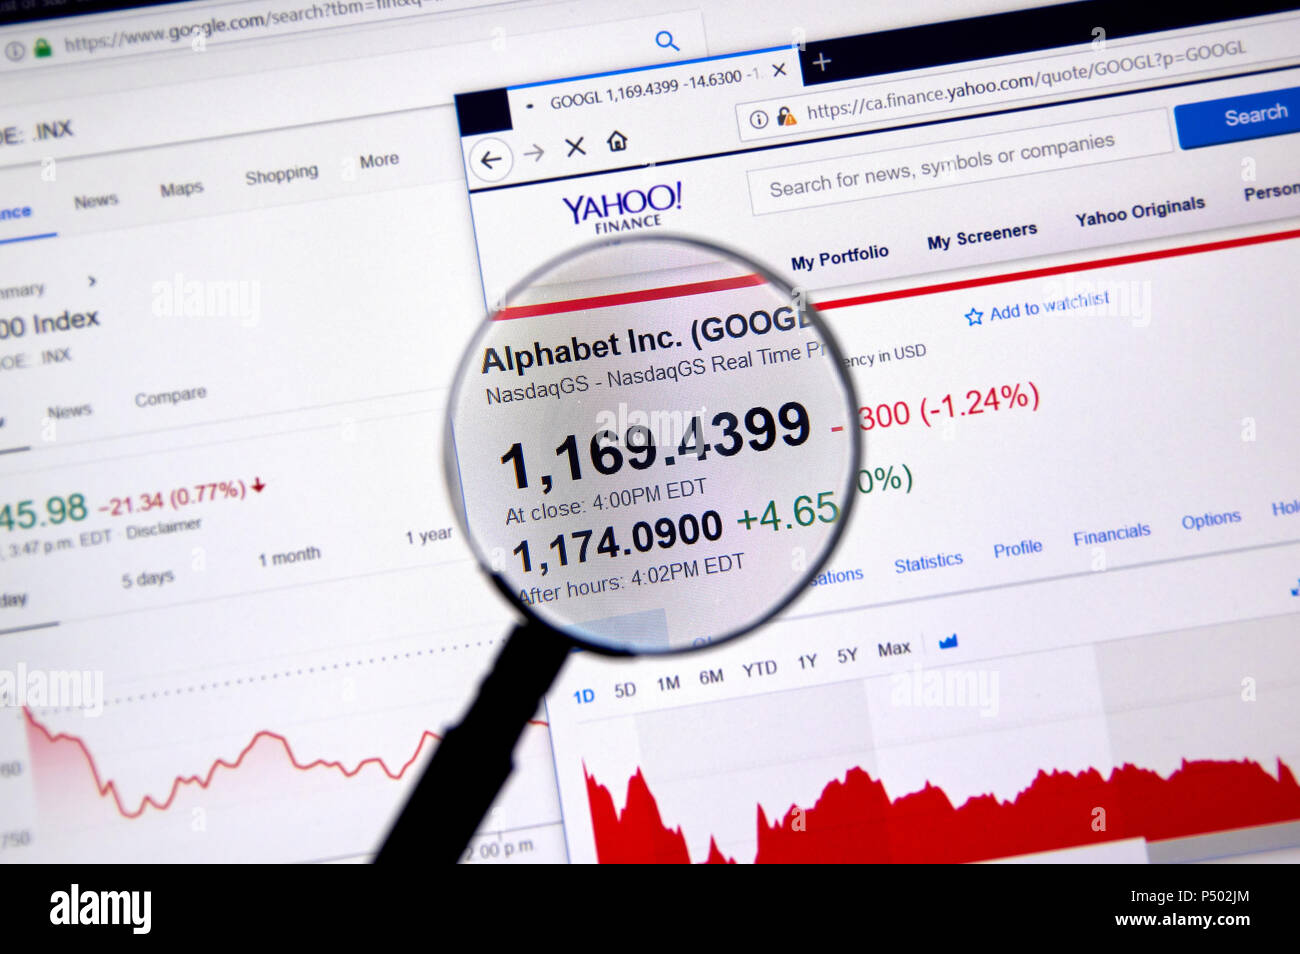 MONTREAL, CANADA - JUNE 22, 2018: Alphabet Inc GOOGL ticker with shares price and charts under magnifying glass on Yahoo Finance. - Stock Image